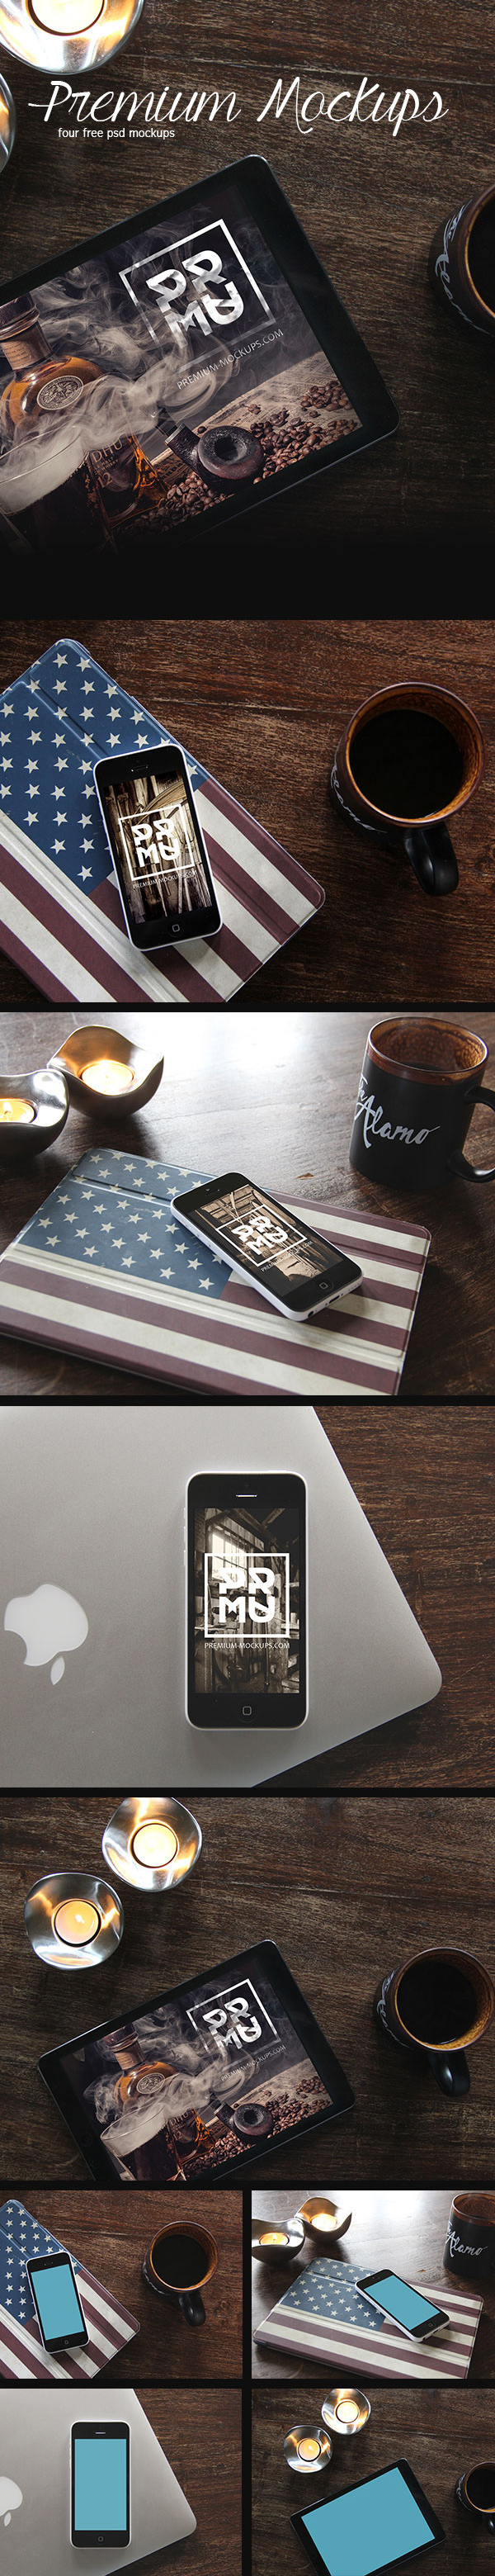 iPhone - iPad Photo MockUps2